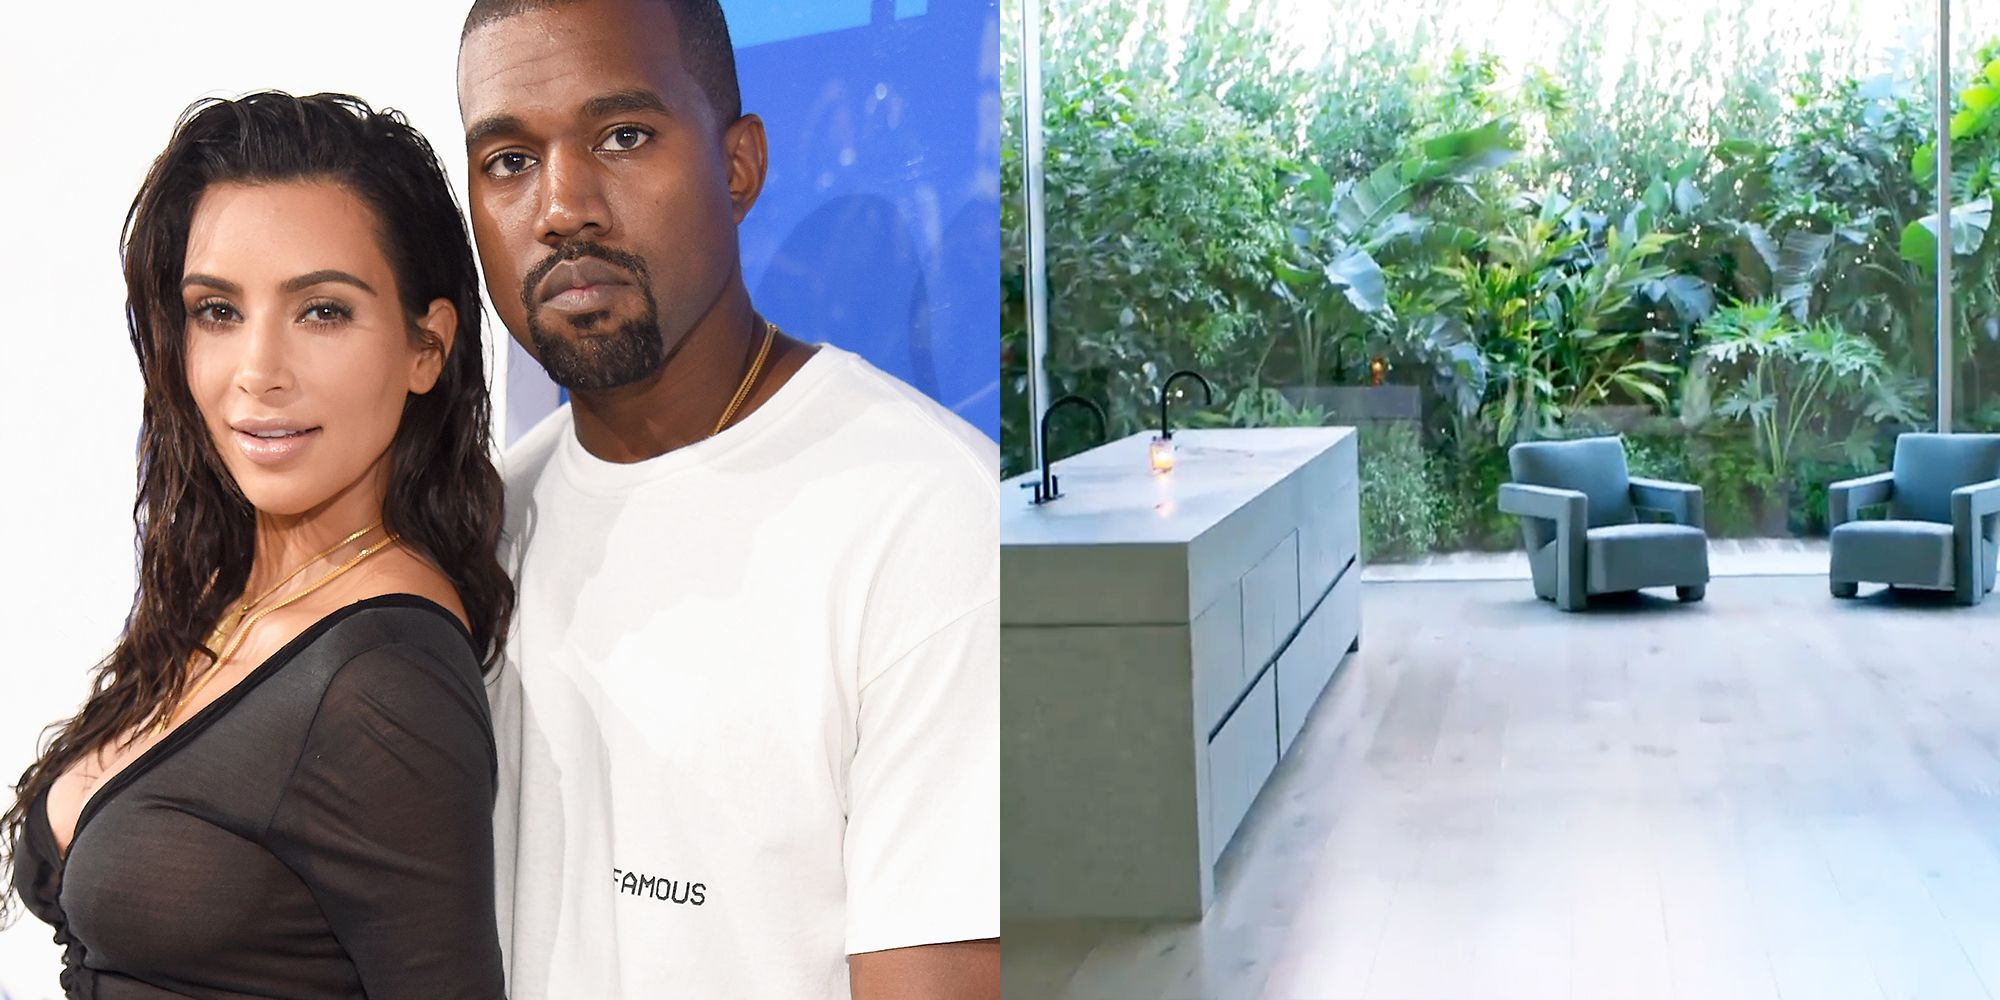 I Have Approximately 1791245 Questions About Kim and Kanye's Sink